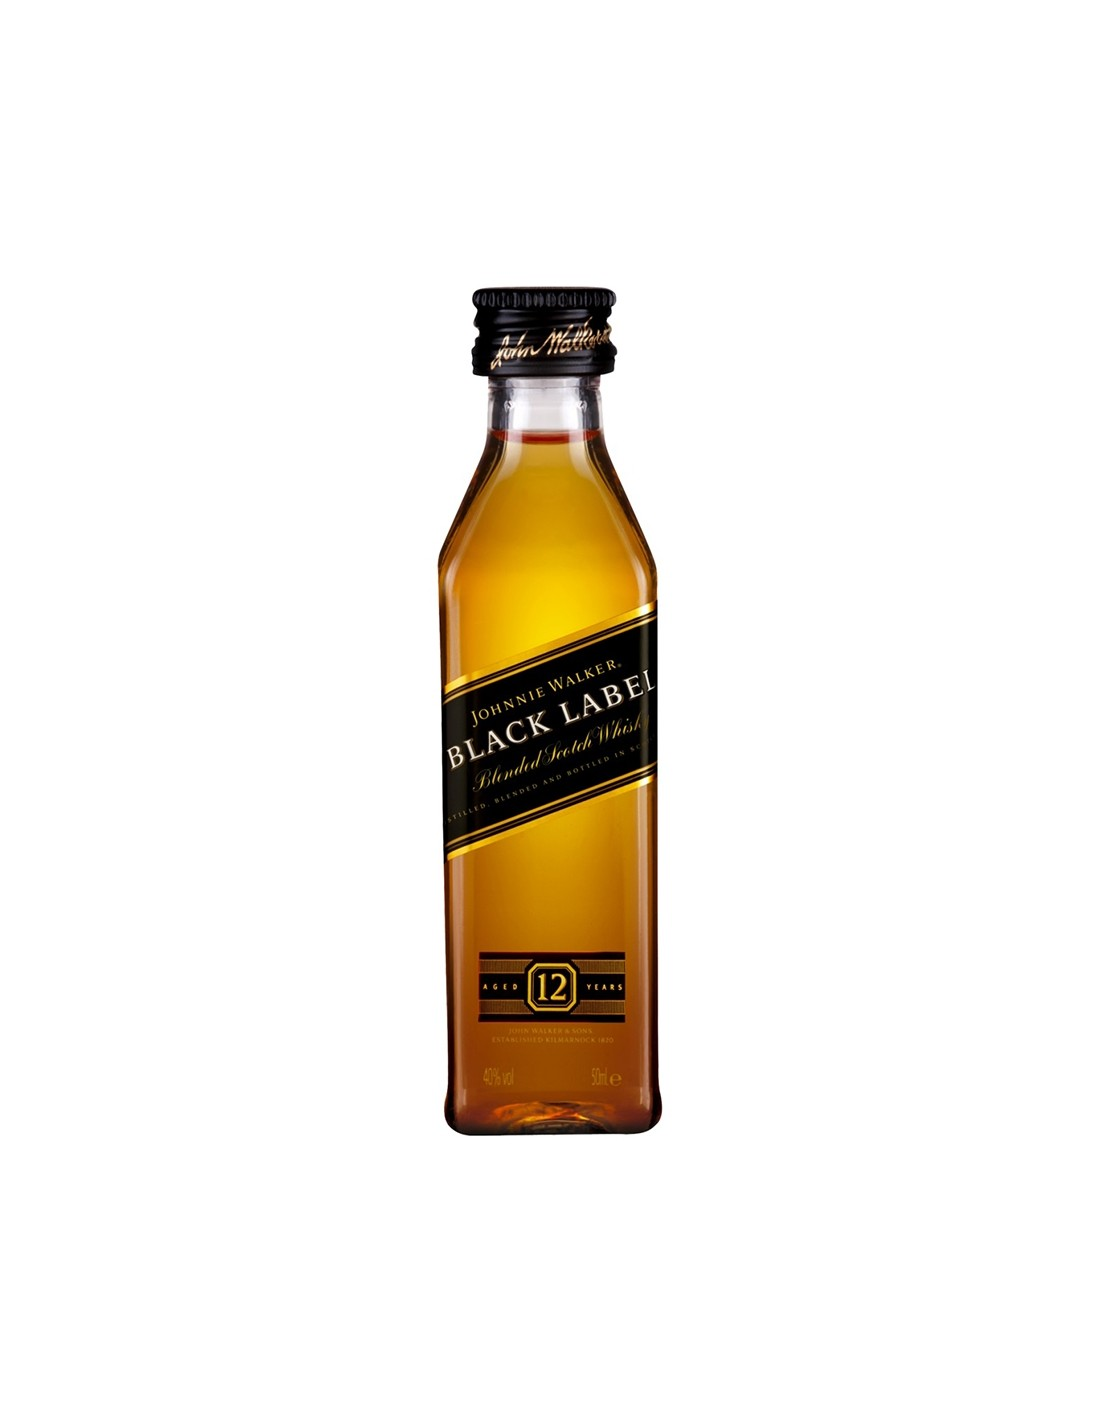 Whisky Johnnie Walker Black Label, 12 ani, 40% alc., 0.05L, Scotia